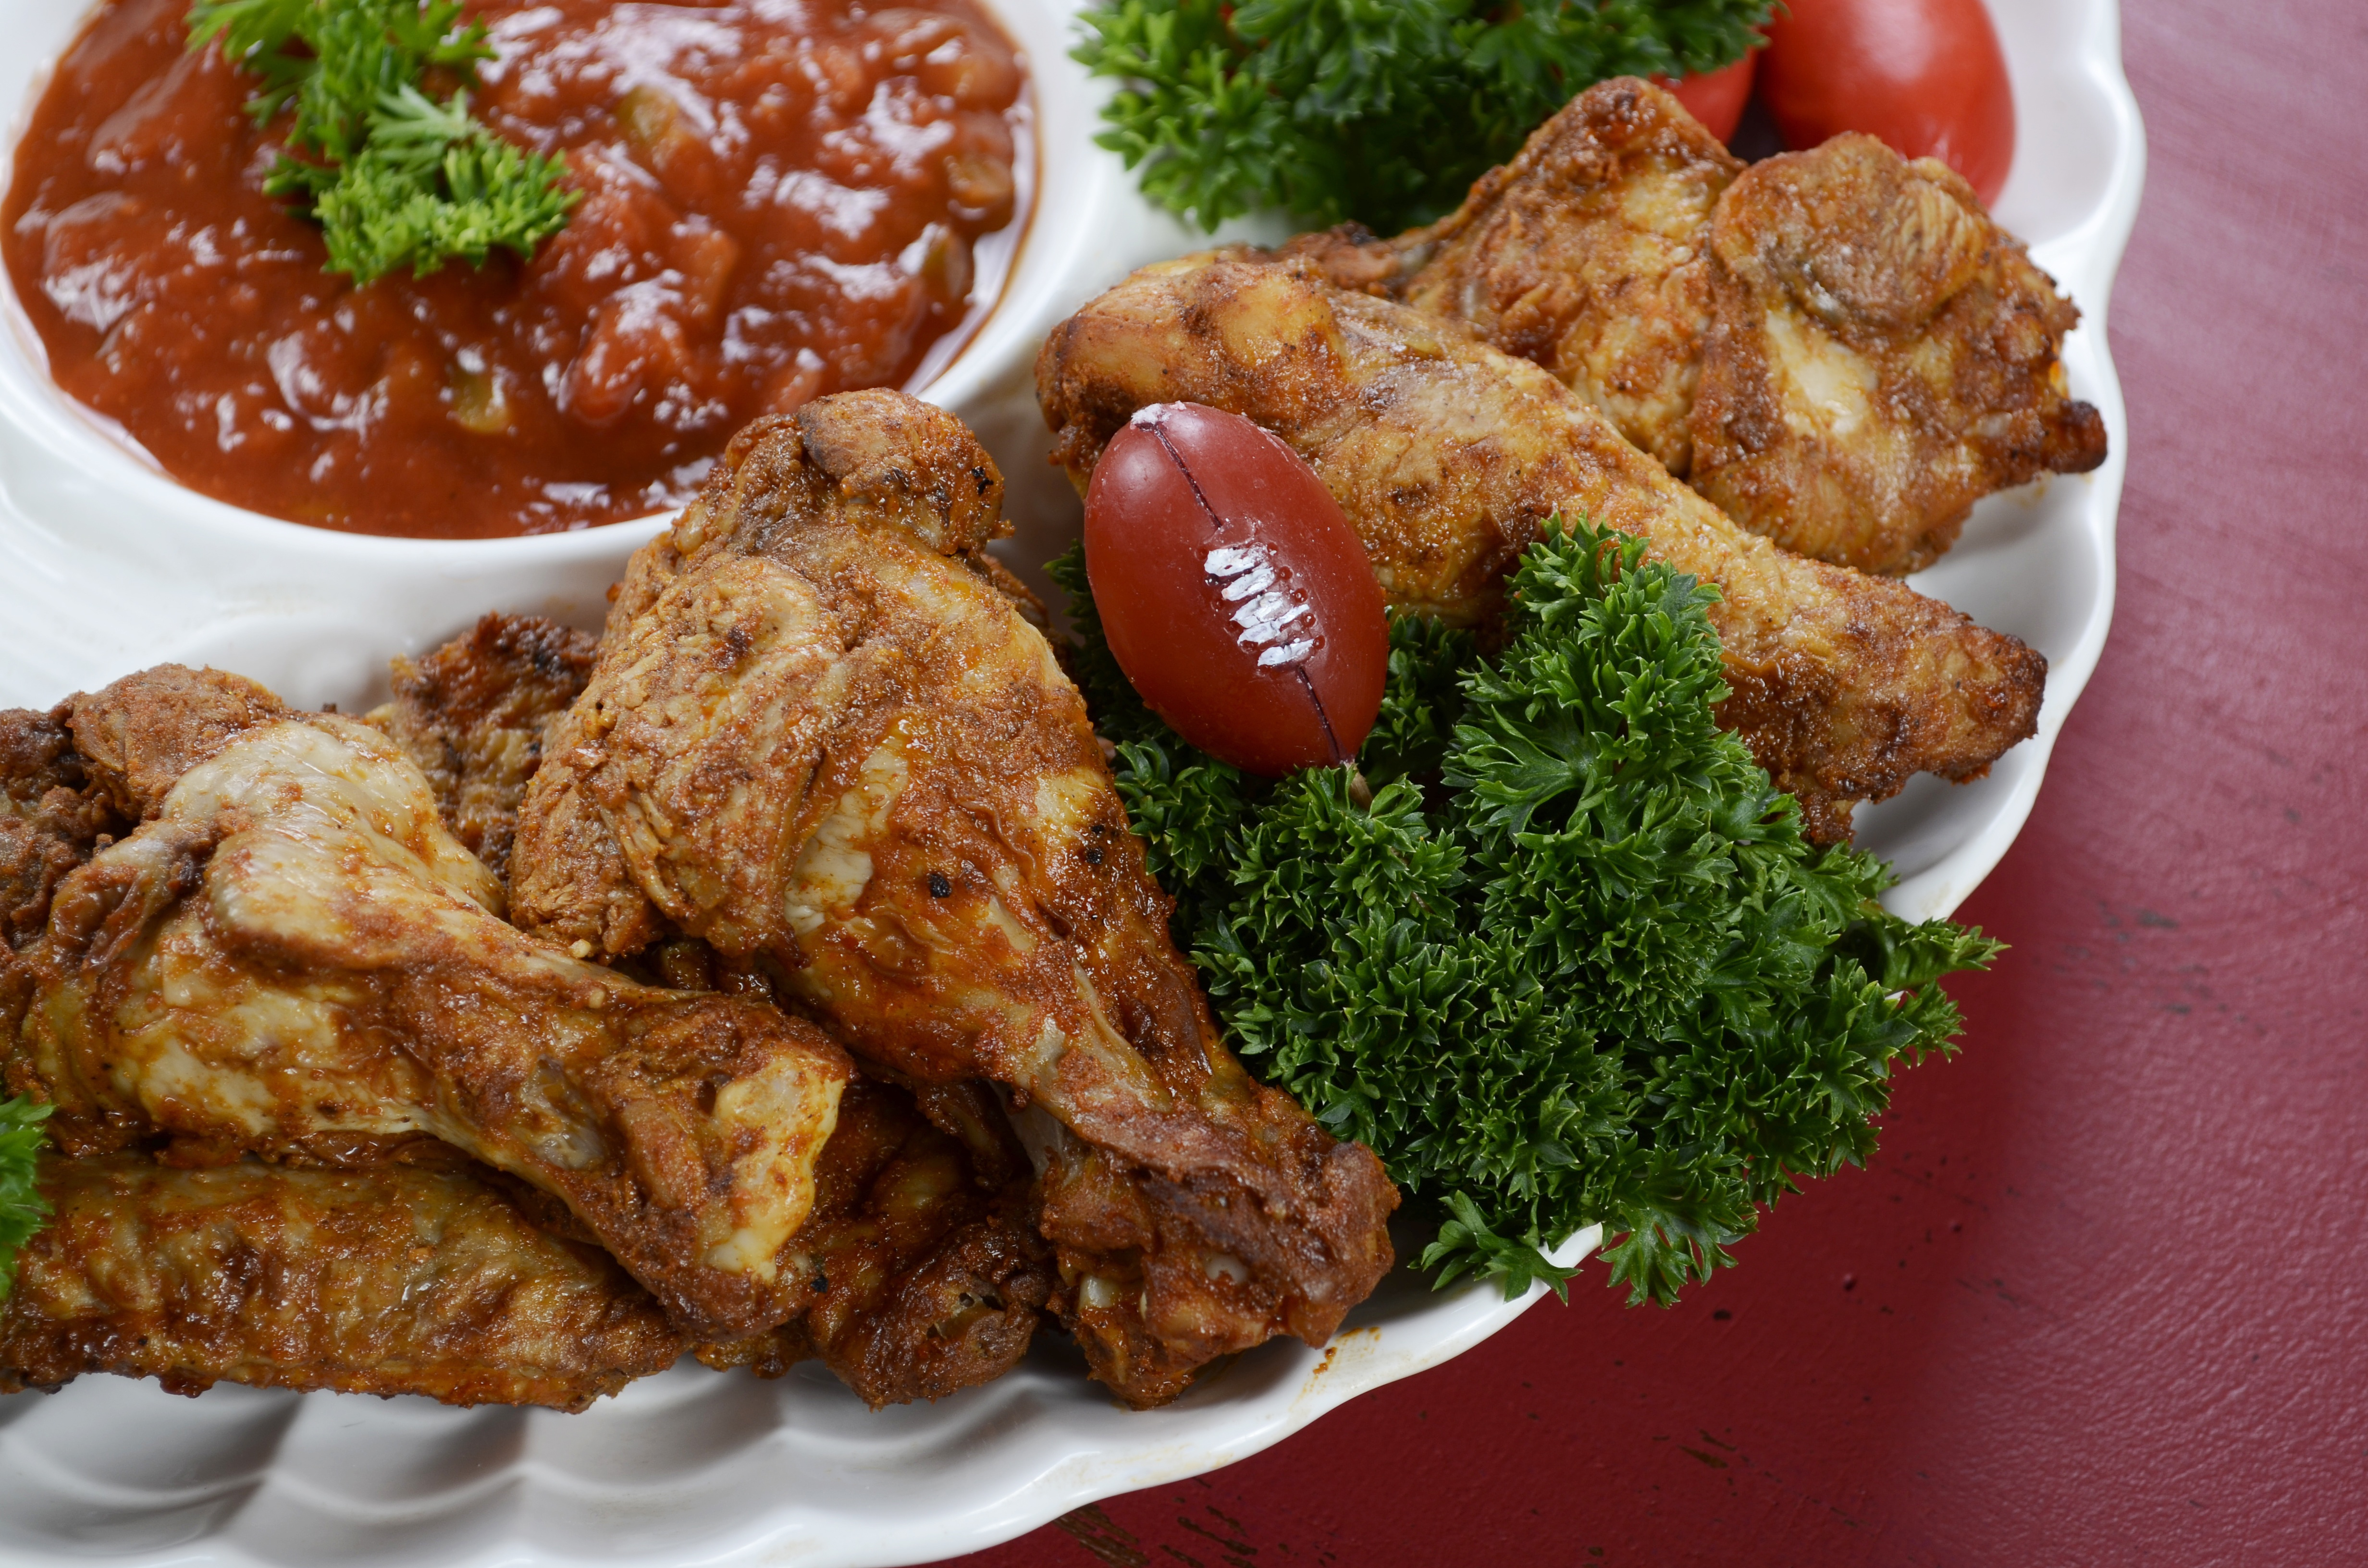 Super Bowl Sunday is the second-largest food consumption day of the year, following Thanksgiving.